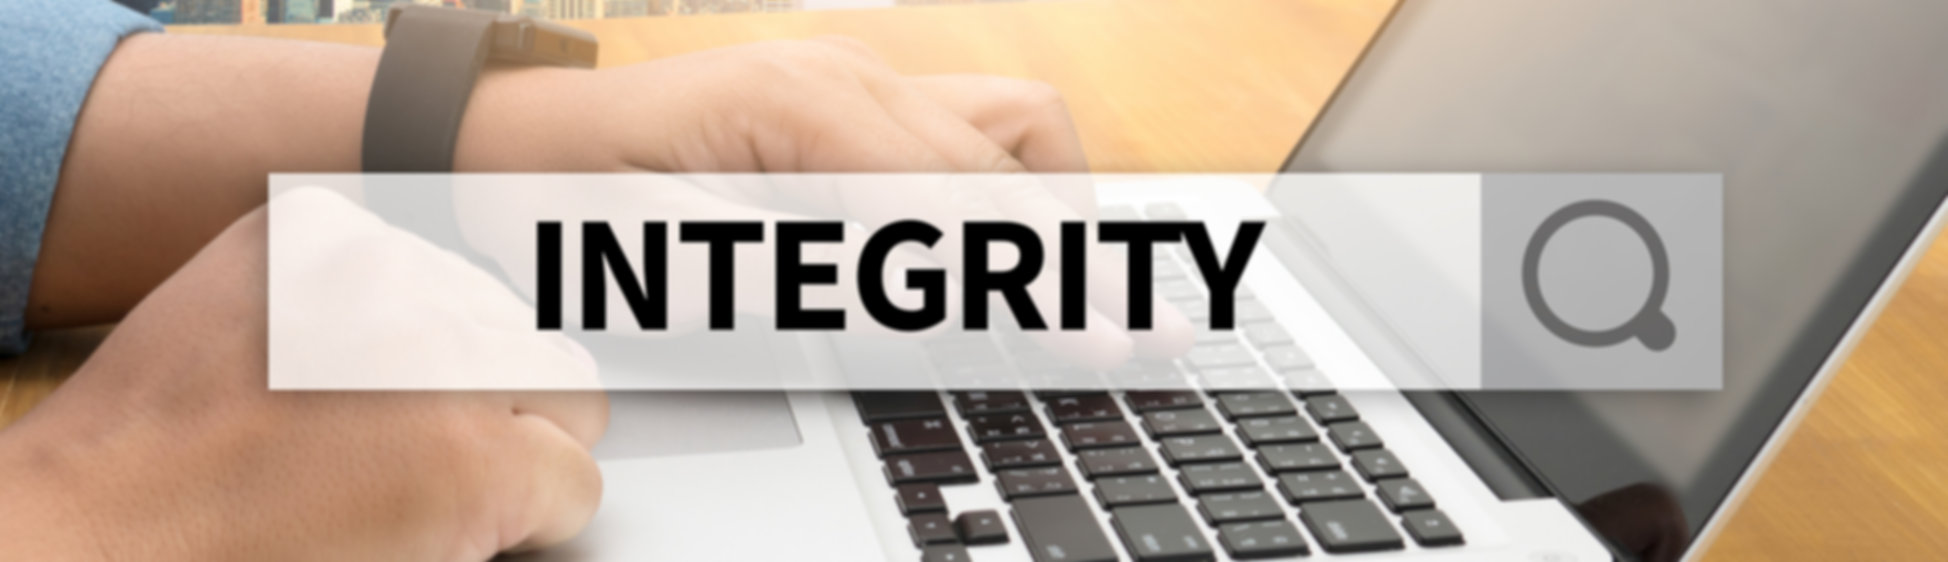 INTEGRITY   Ethics Loyalty Moral Motivat